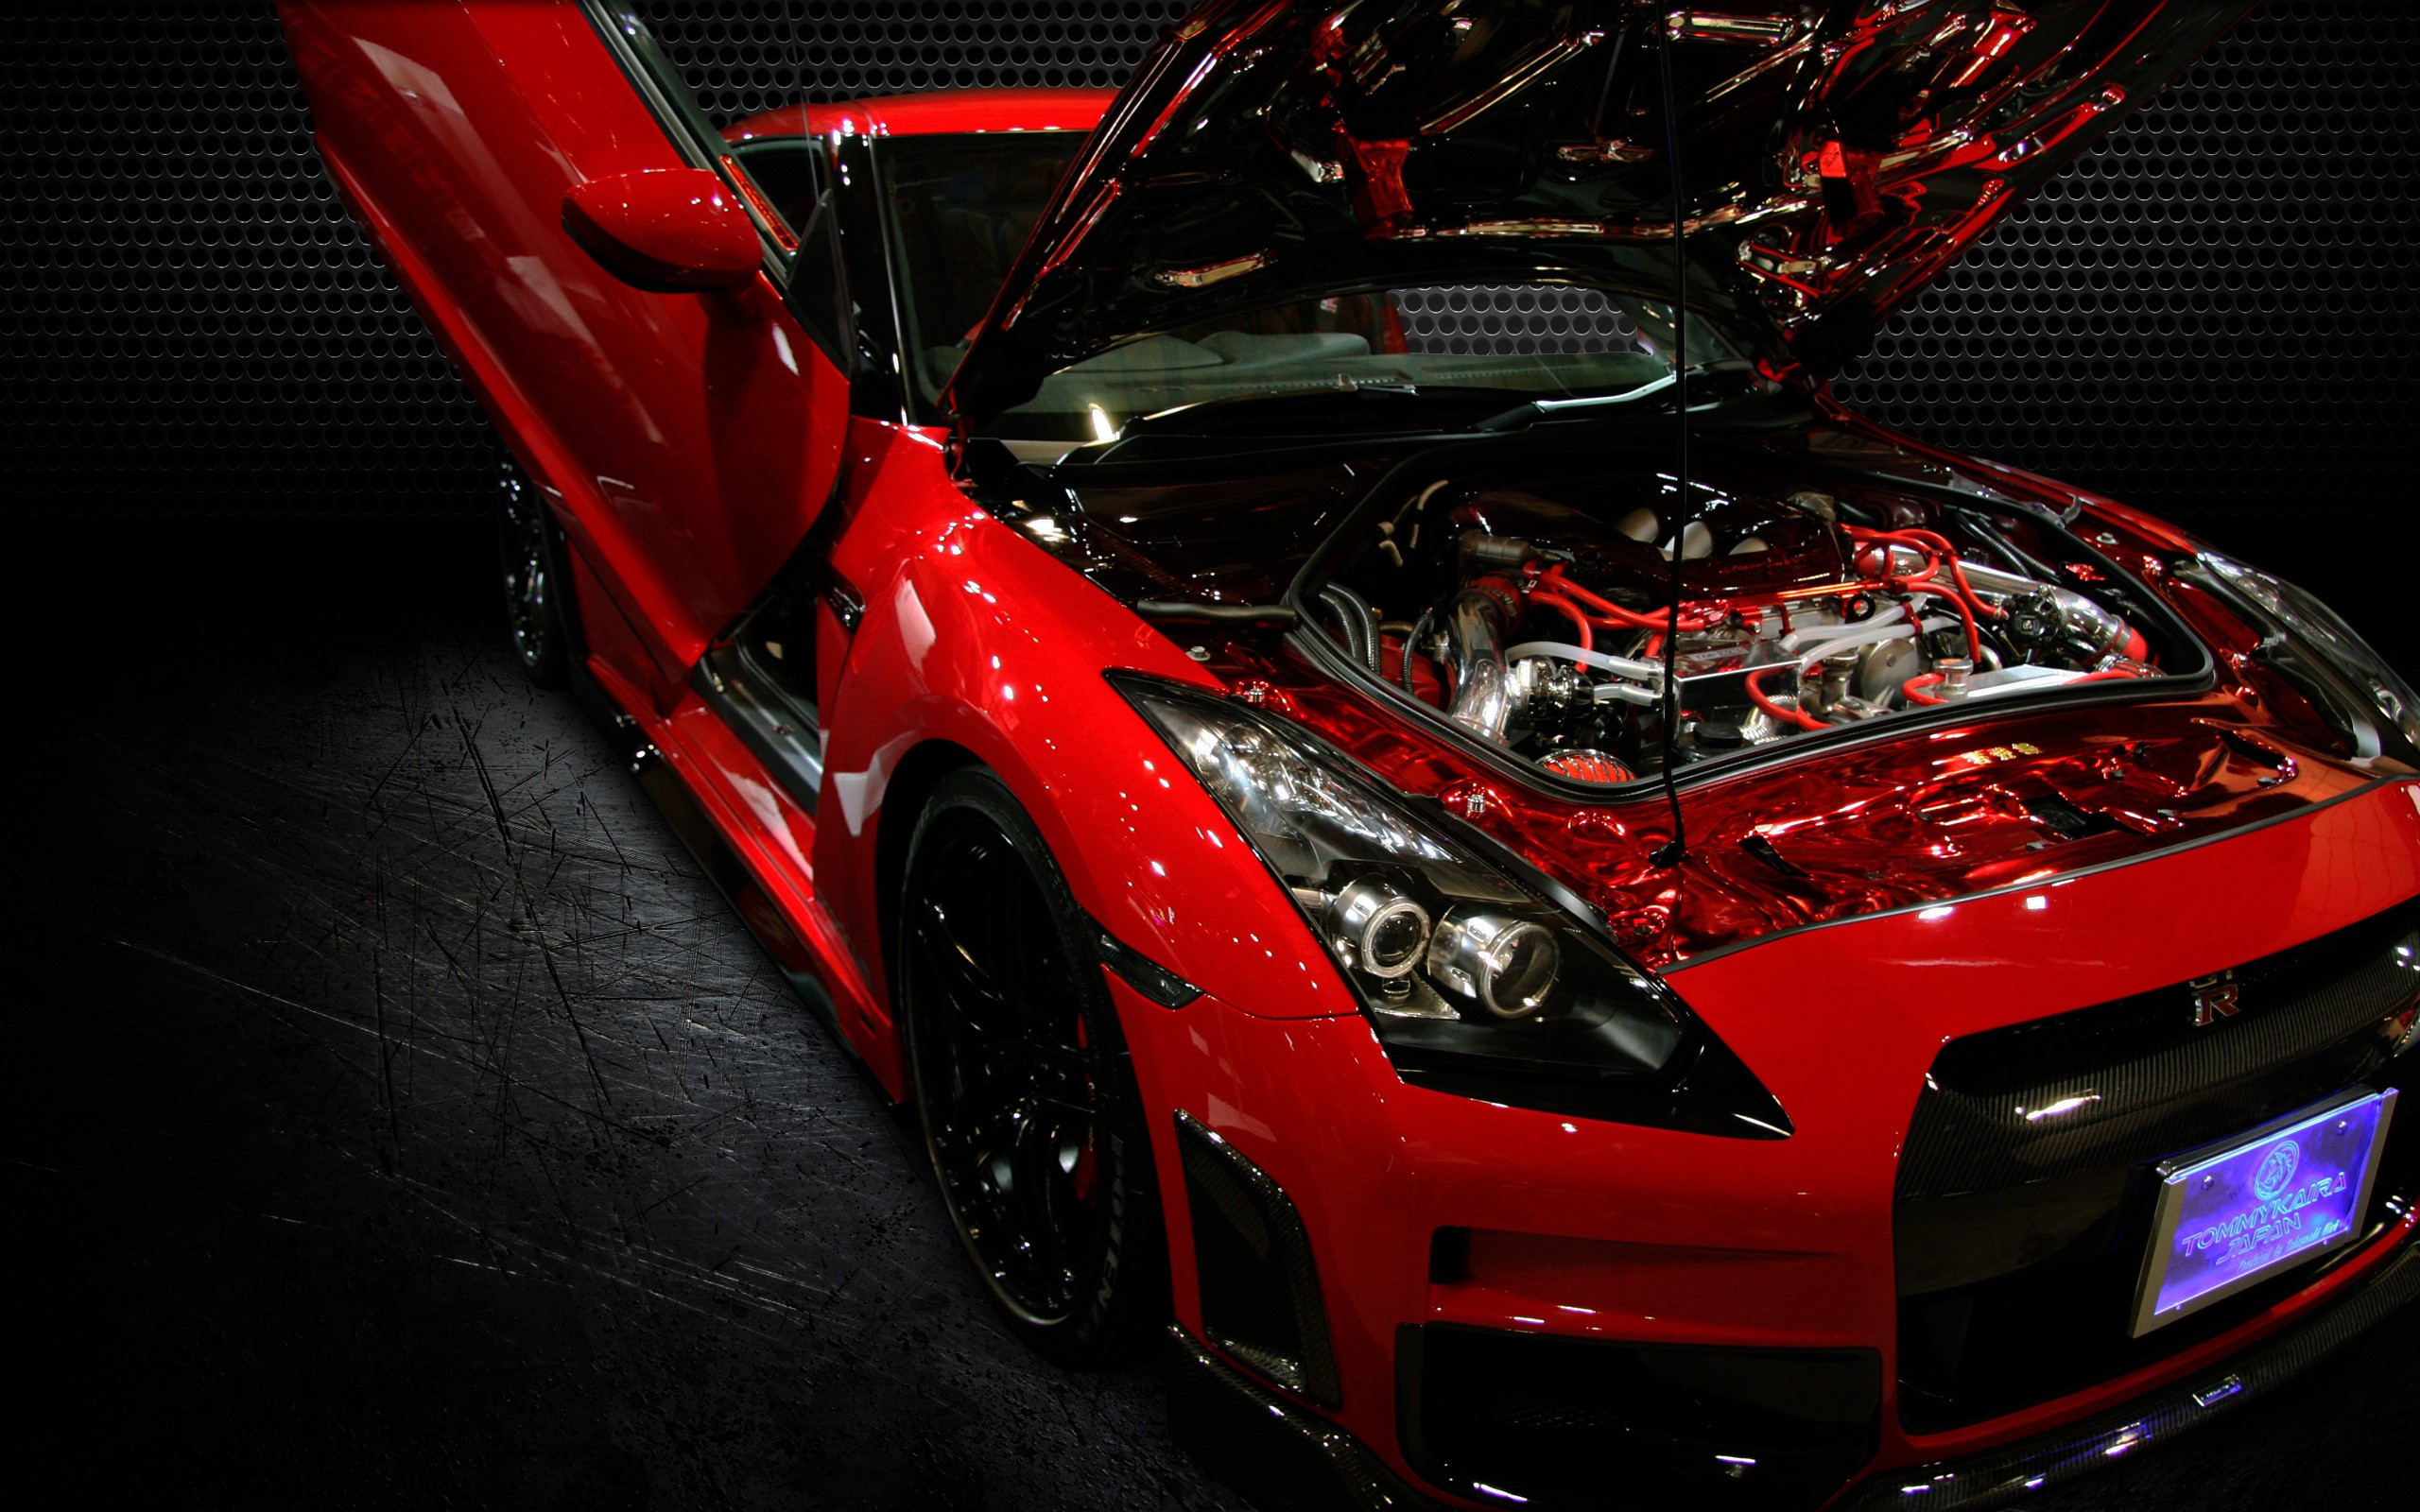 Nissan Tuning - Nissan & Cars Background Wallpapers on Desktop ...